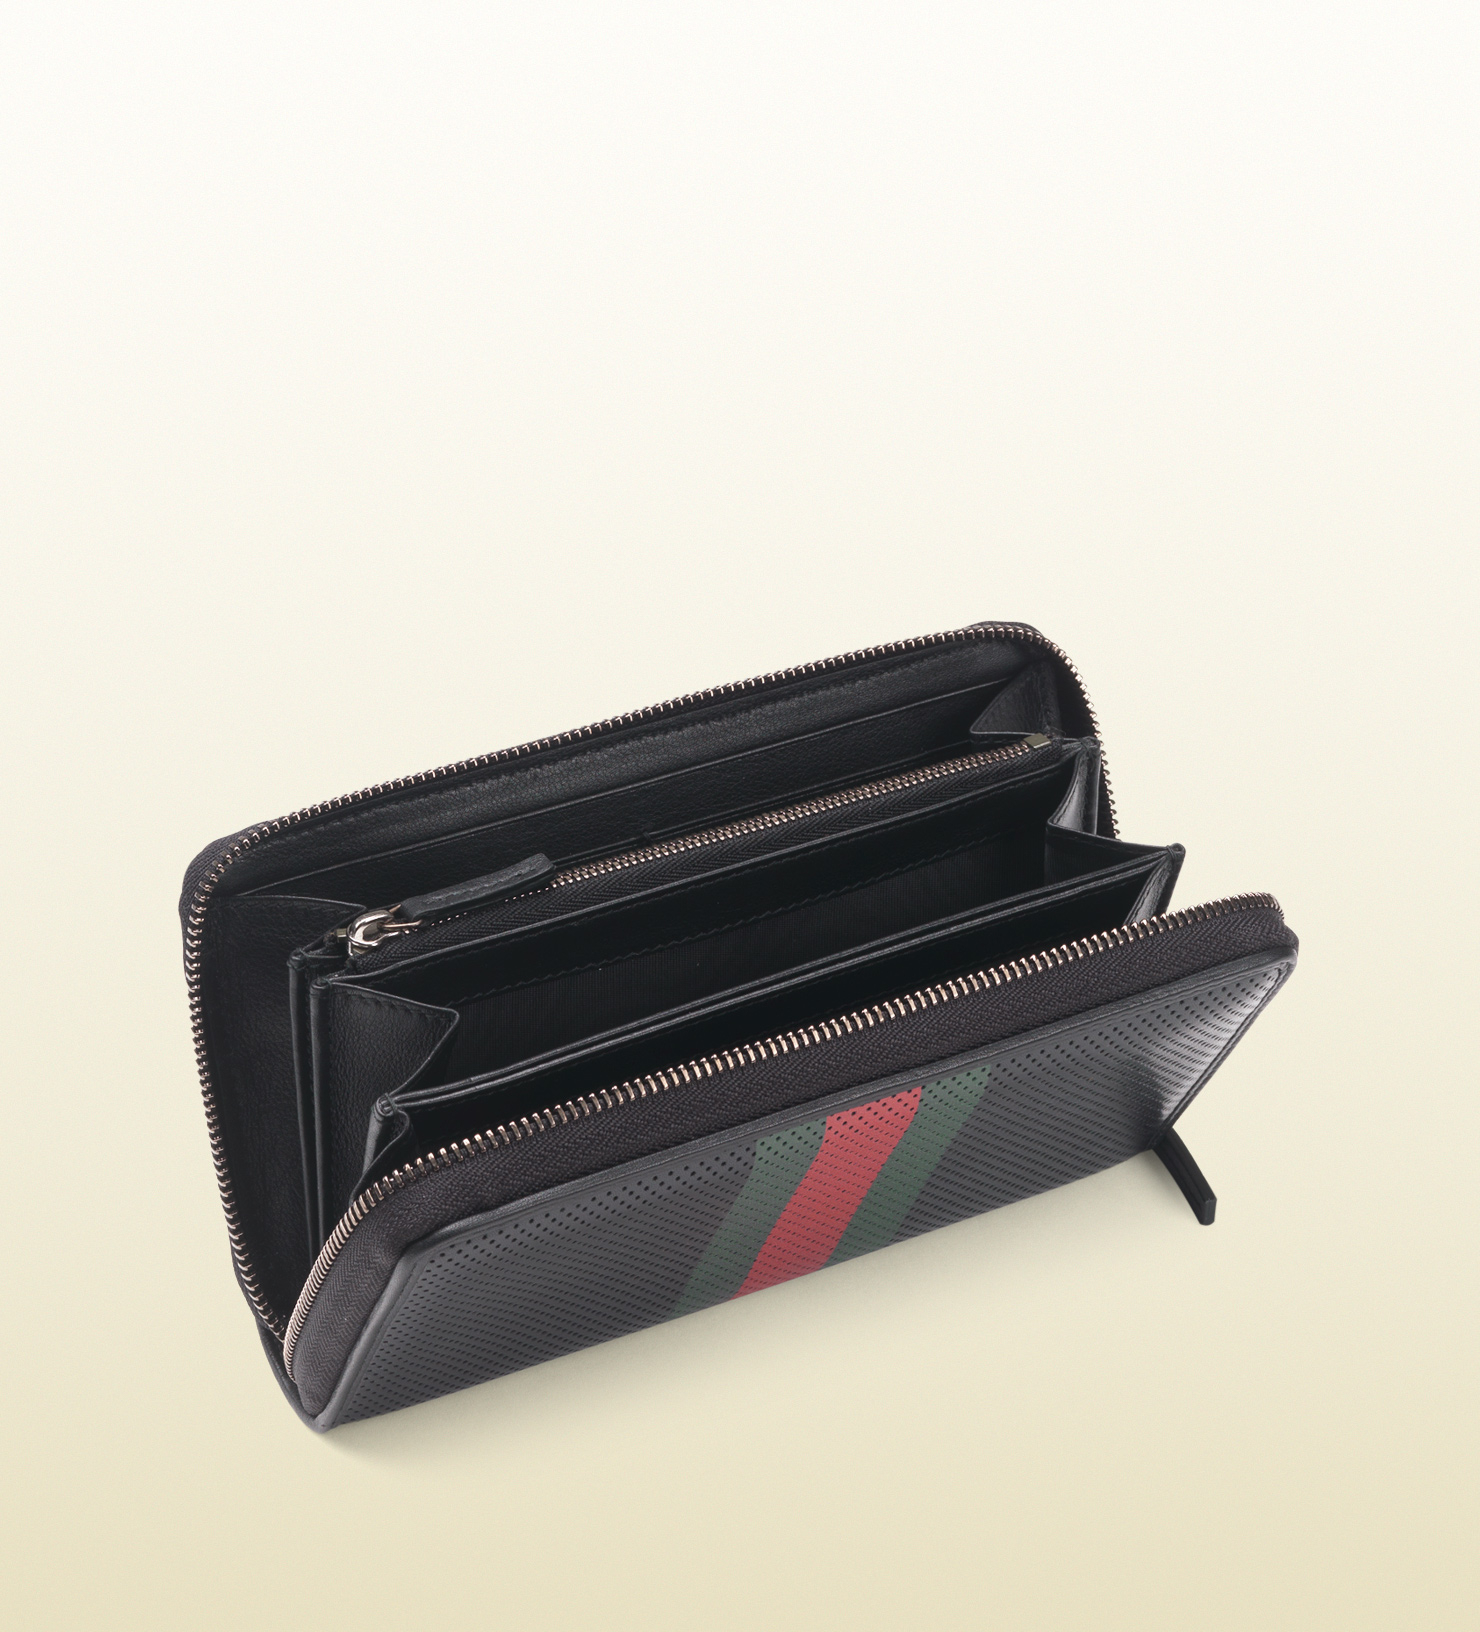 725e37145d37 Gucci Mens Wallet Zip Around   Stanford Center for Opportunity ...